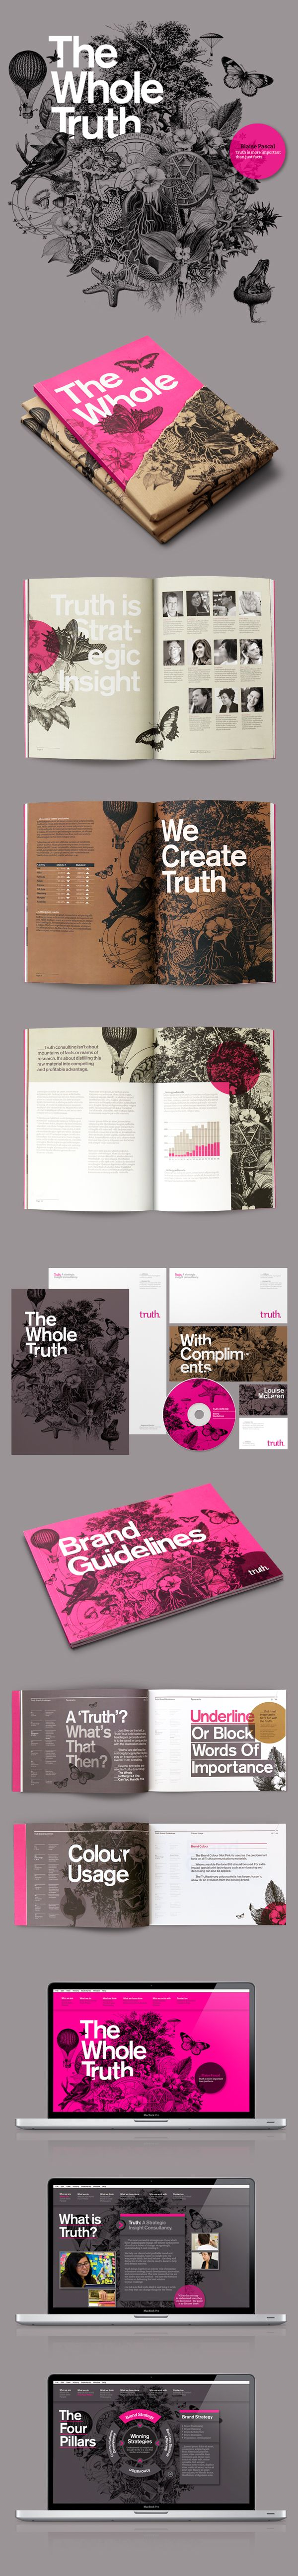 Truth Branding by Socio Design , via Behance